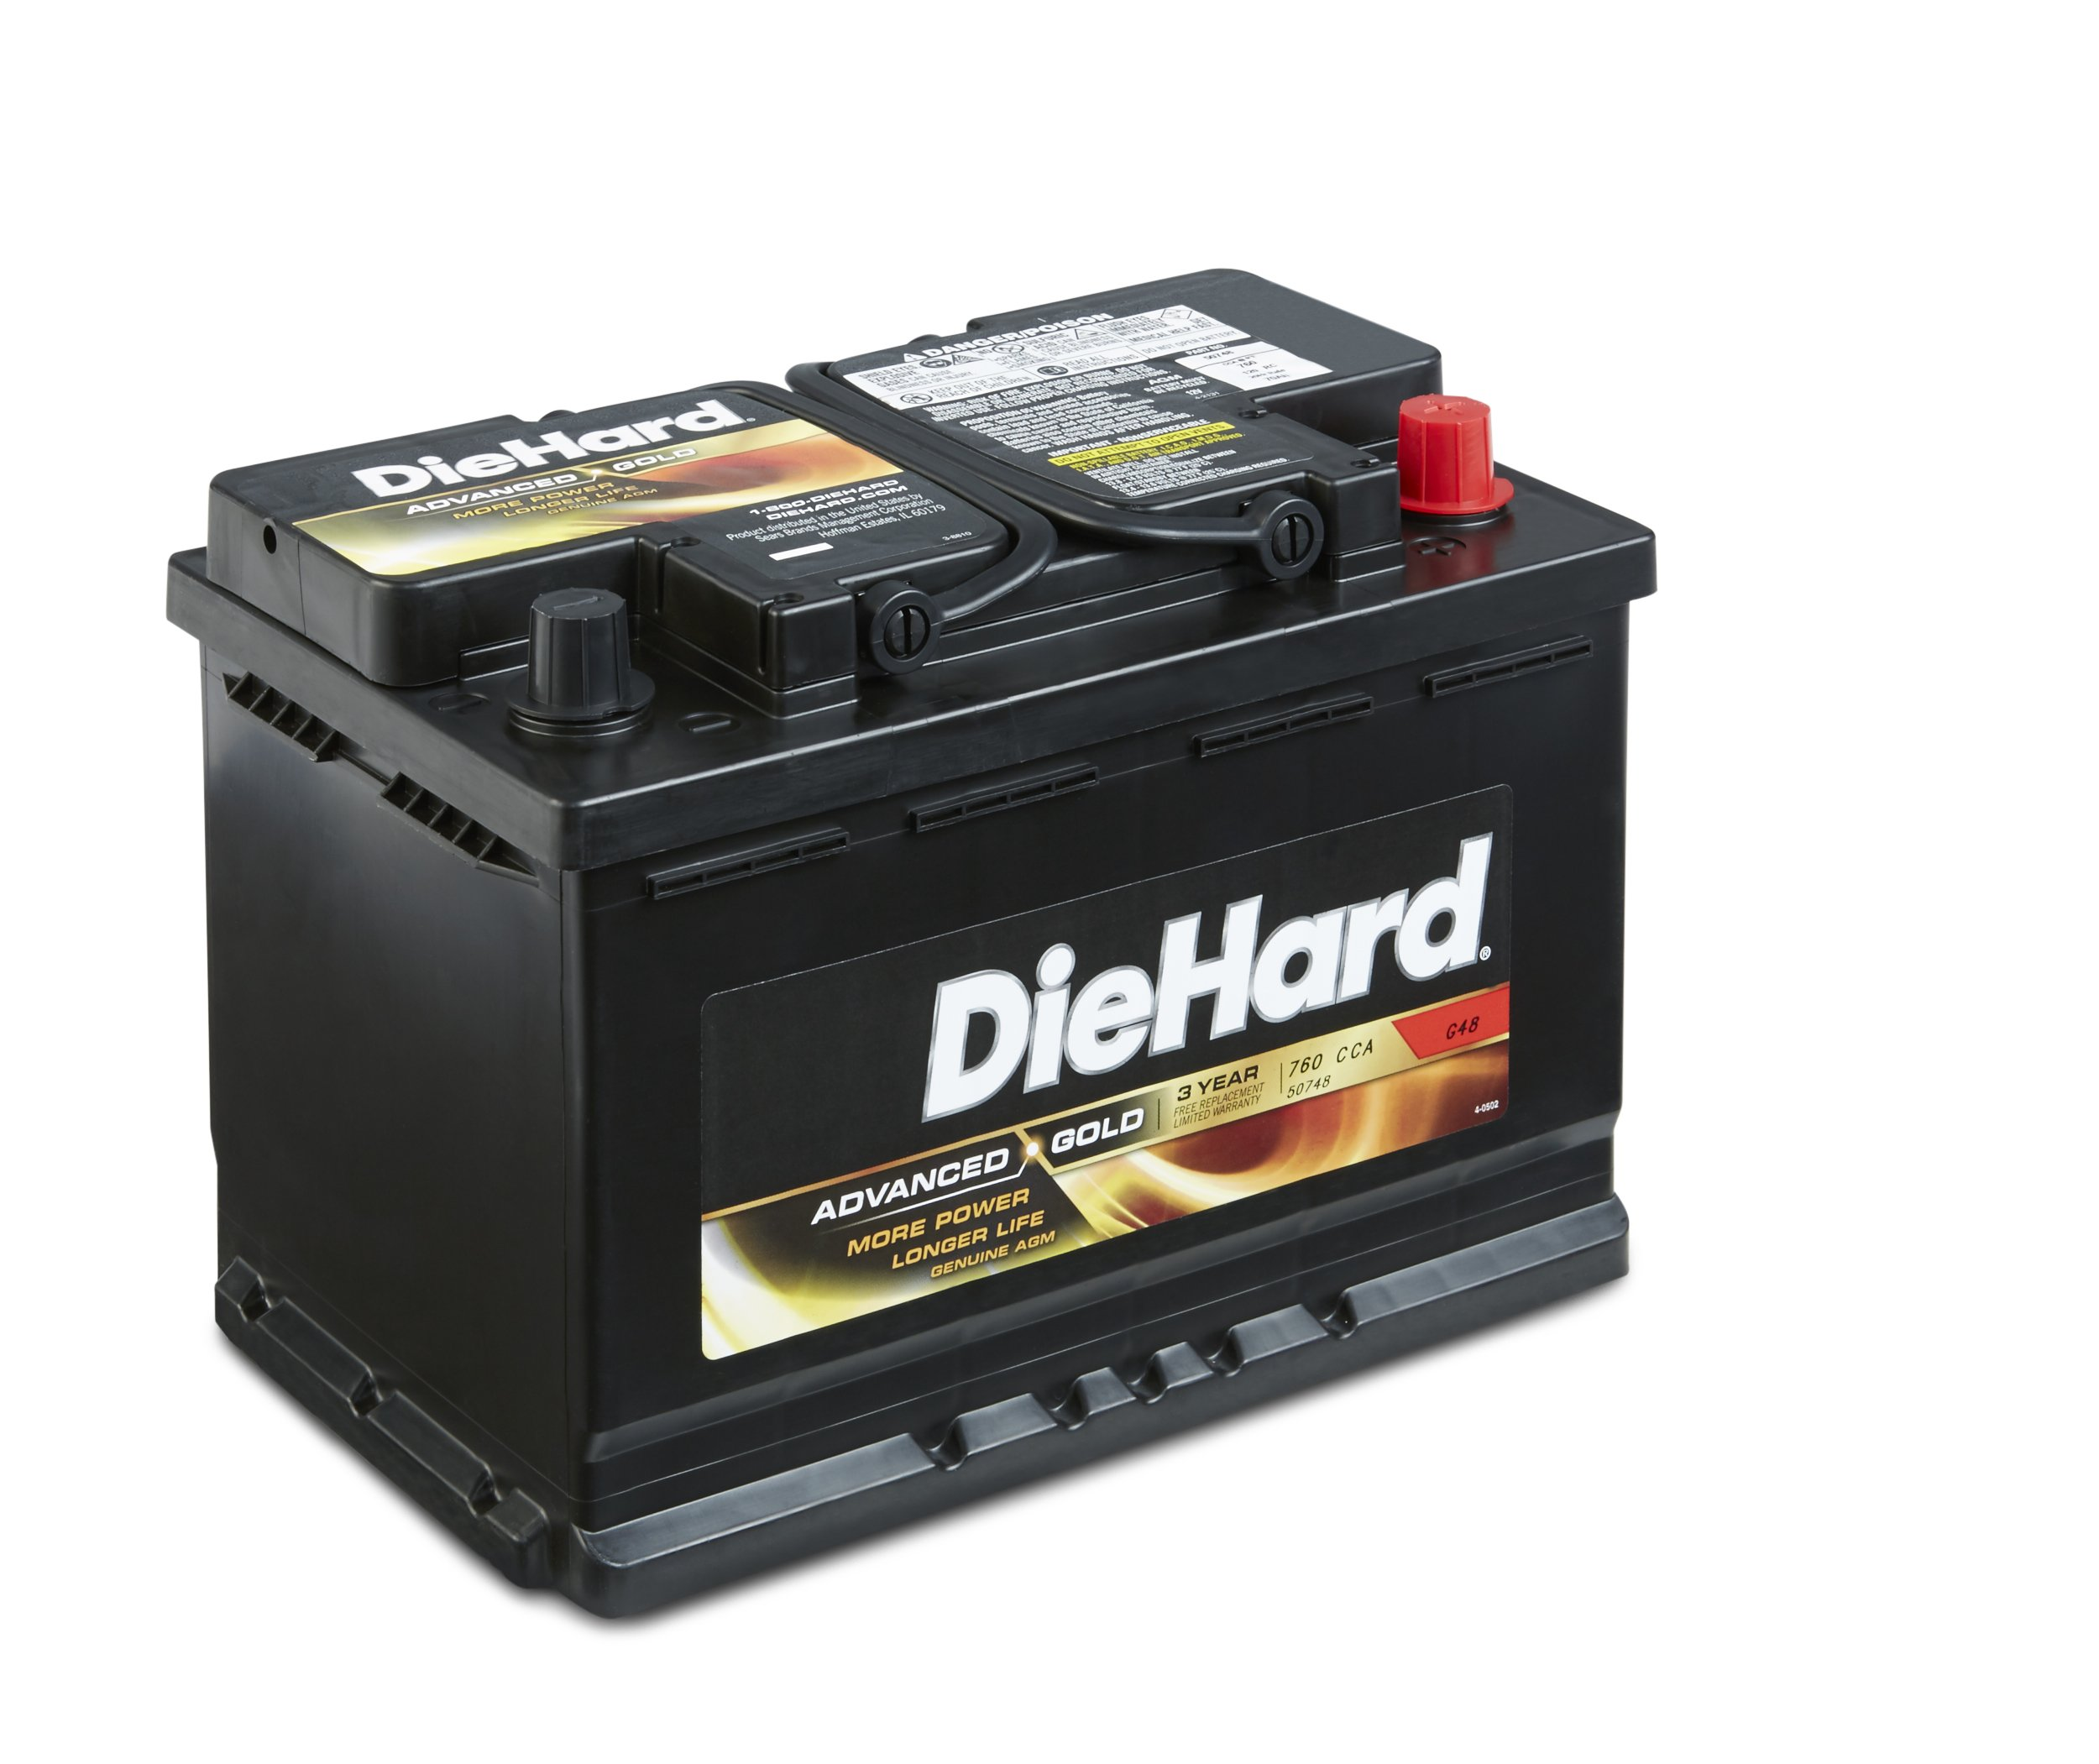 DieHard 38228 Advanced Gold AGM Battery (GP 48)